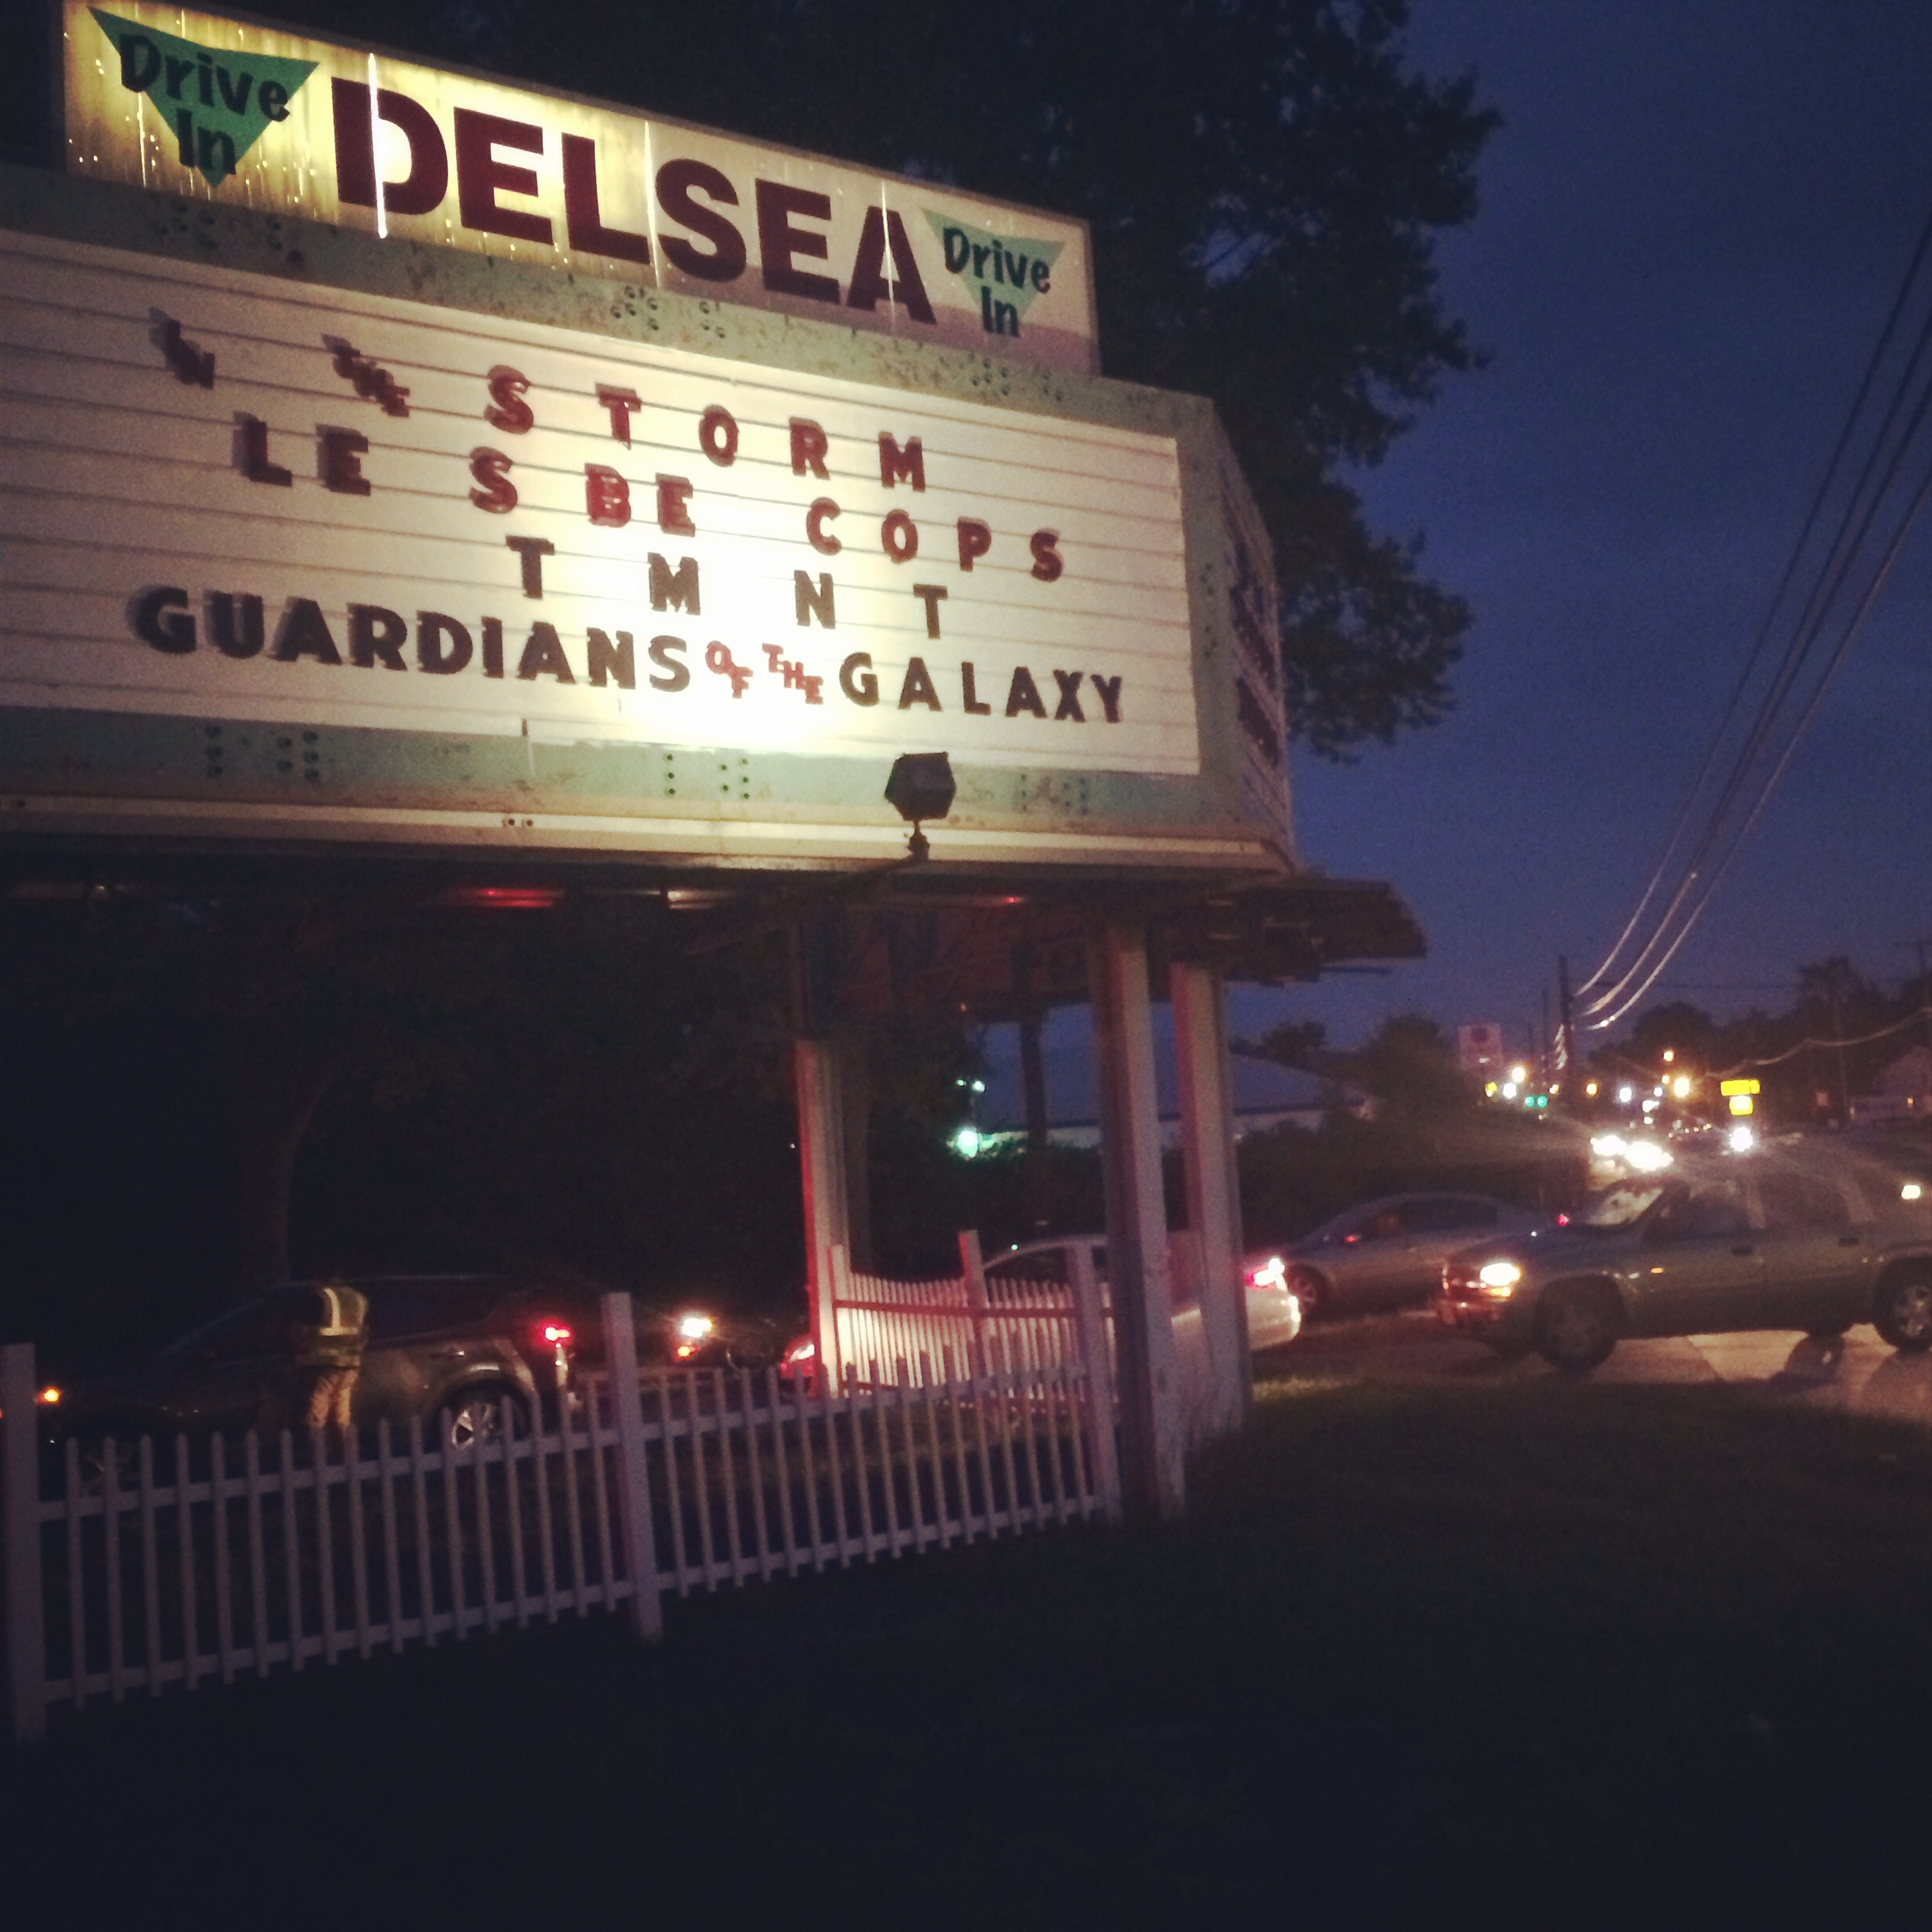 I did get some work in over the week. I drove down to Vineland, New Jersey to visit the  Delsea Drive-In . Doc the owner was very sweet. I can't even explain the line of cars that were waiting to get into this place. It was incredible to see a theatre thriving and so many people supporting it. It really reminded me of my childhood at the drive-in. Added bonus,  on my way home the following day, I got to see two of my aunts that I haven't seen in 14 and 20 years. It was great getting to grab breakfast with them and catch up a bit.